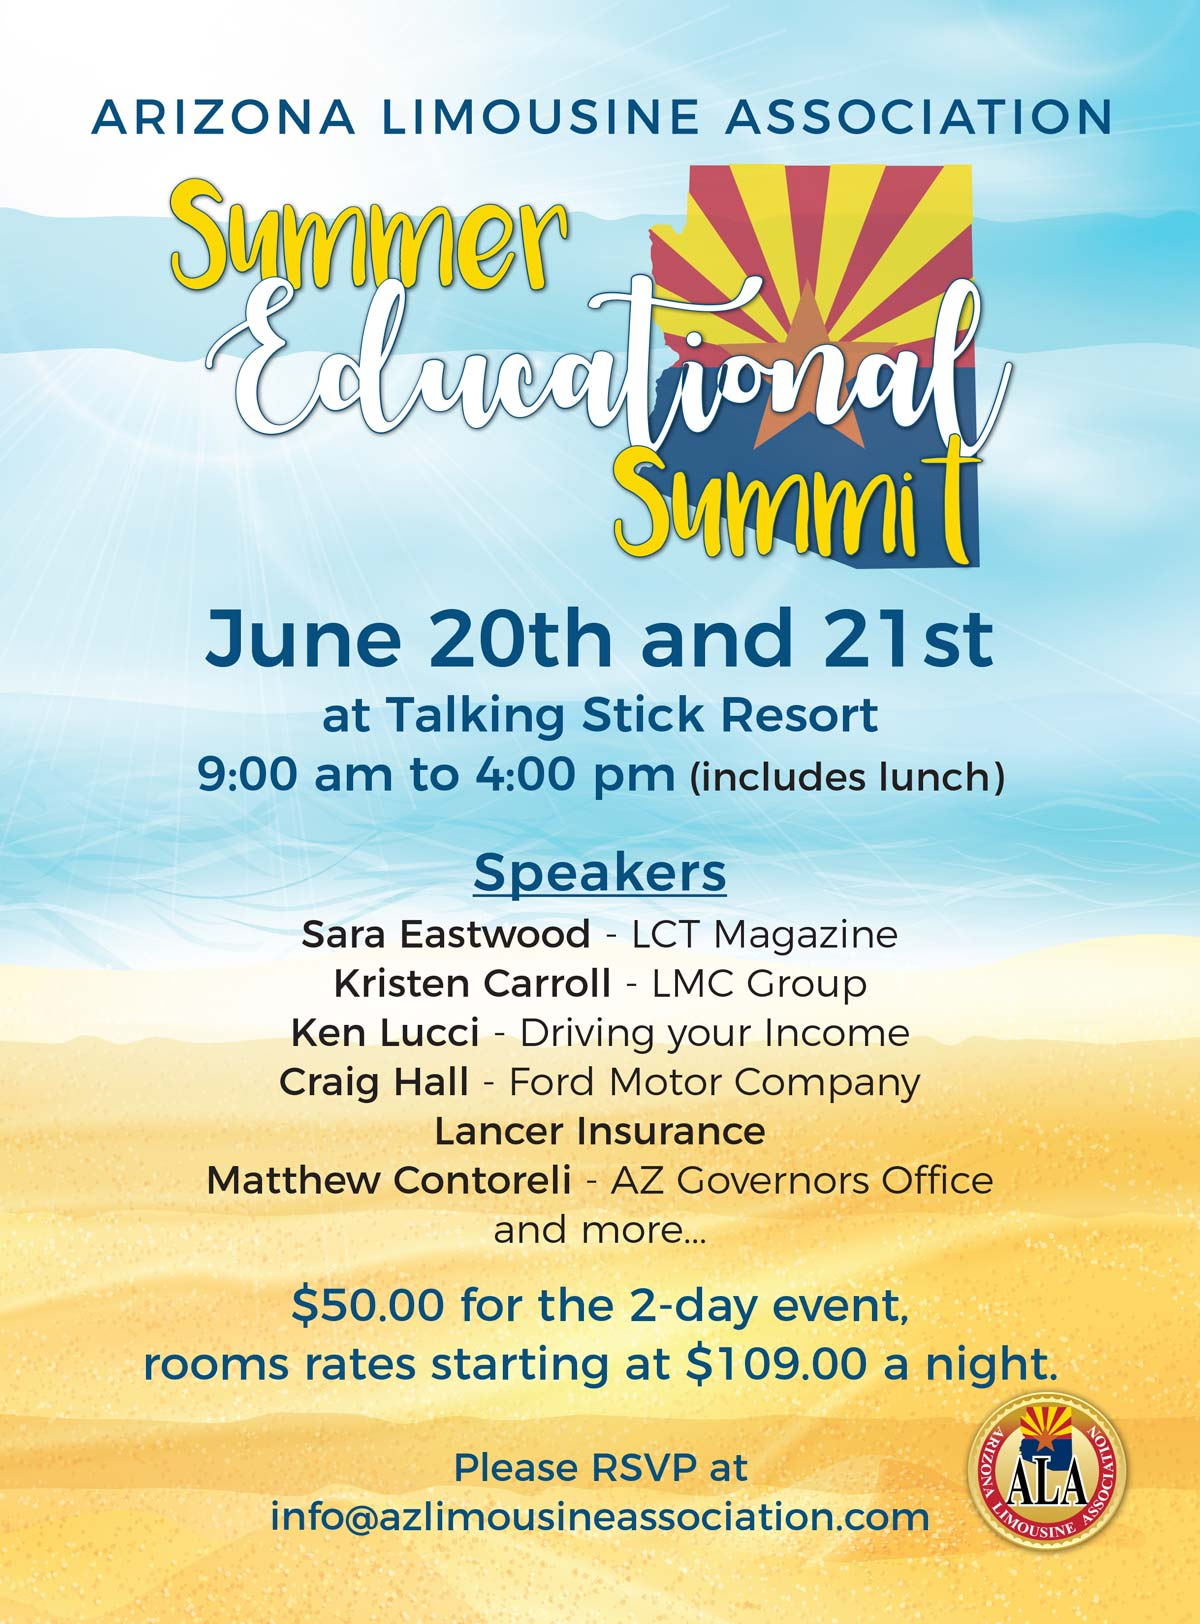 Summer Educational Summit